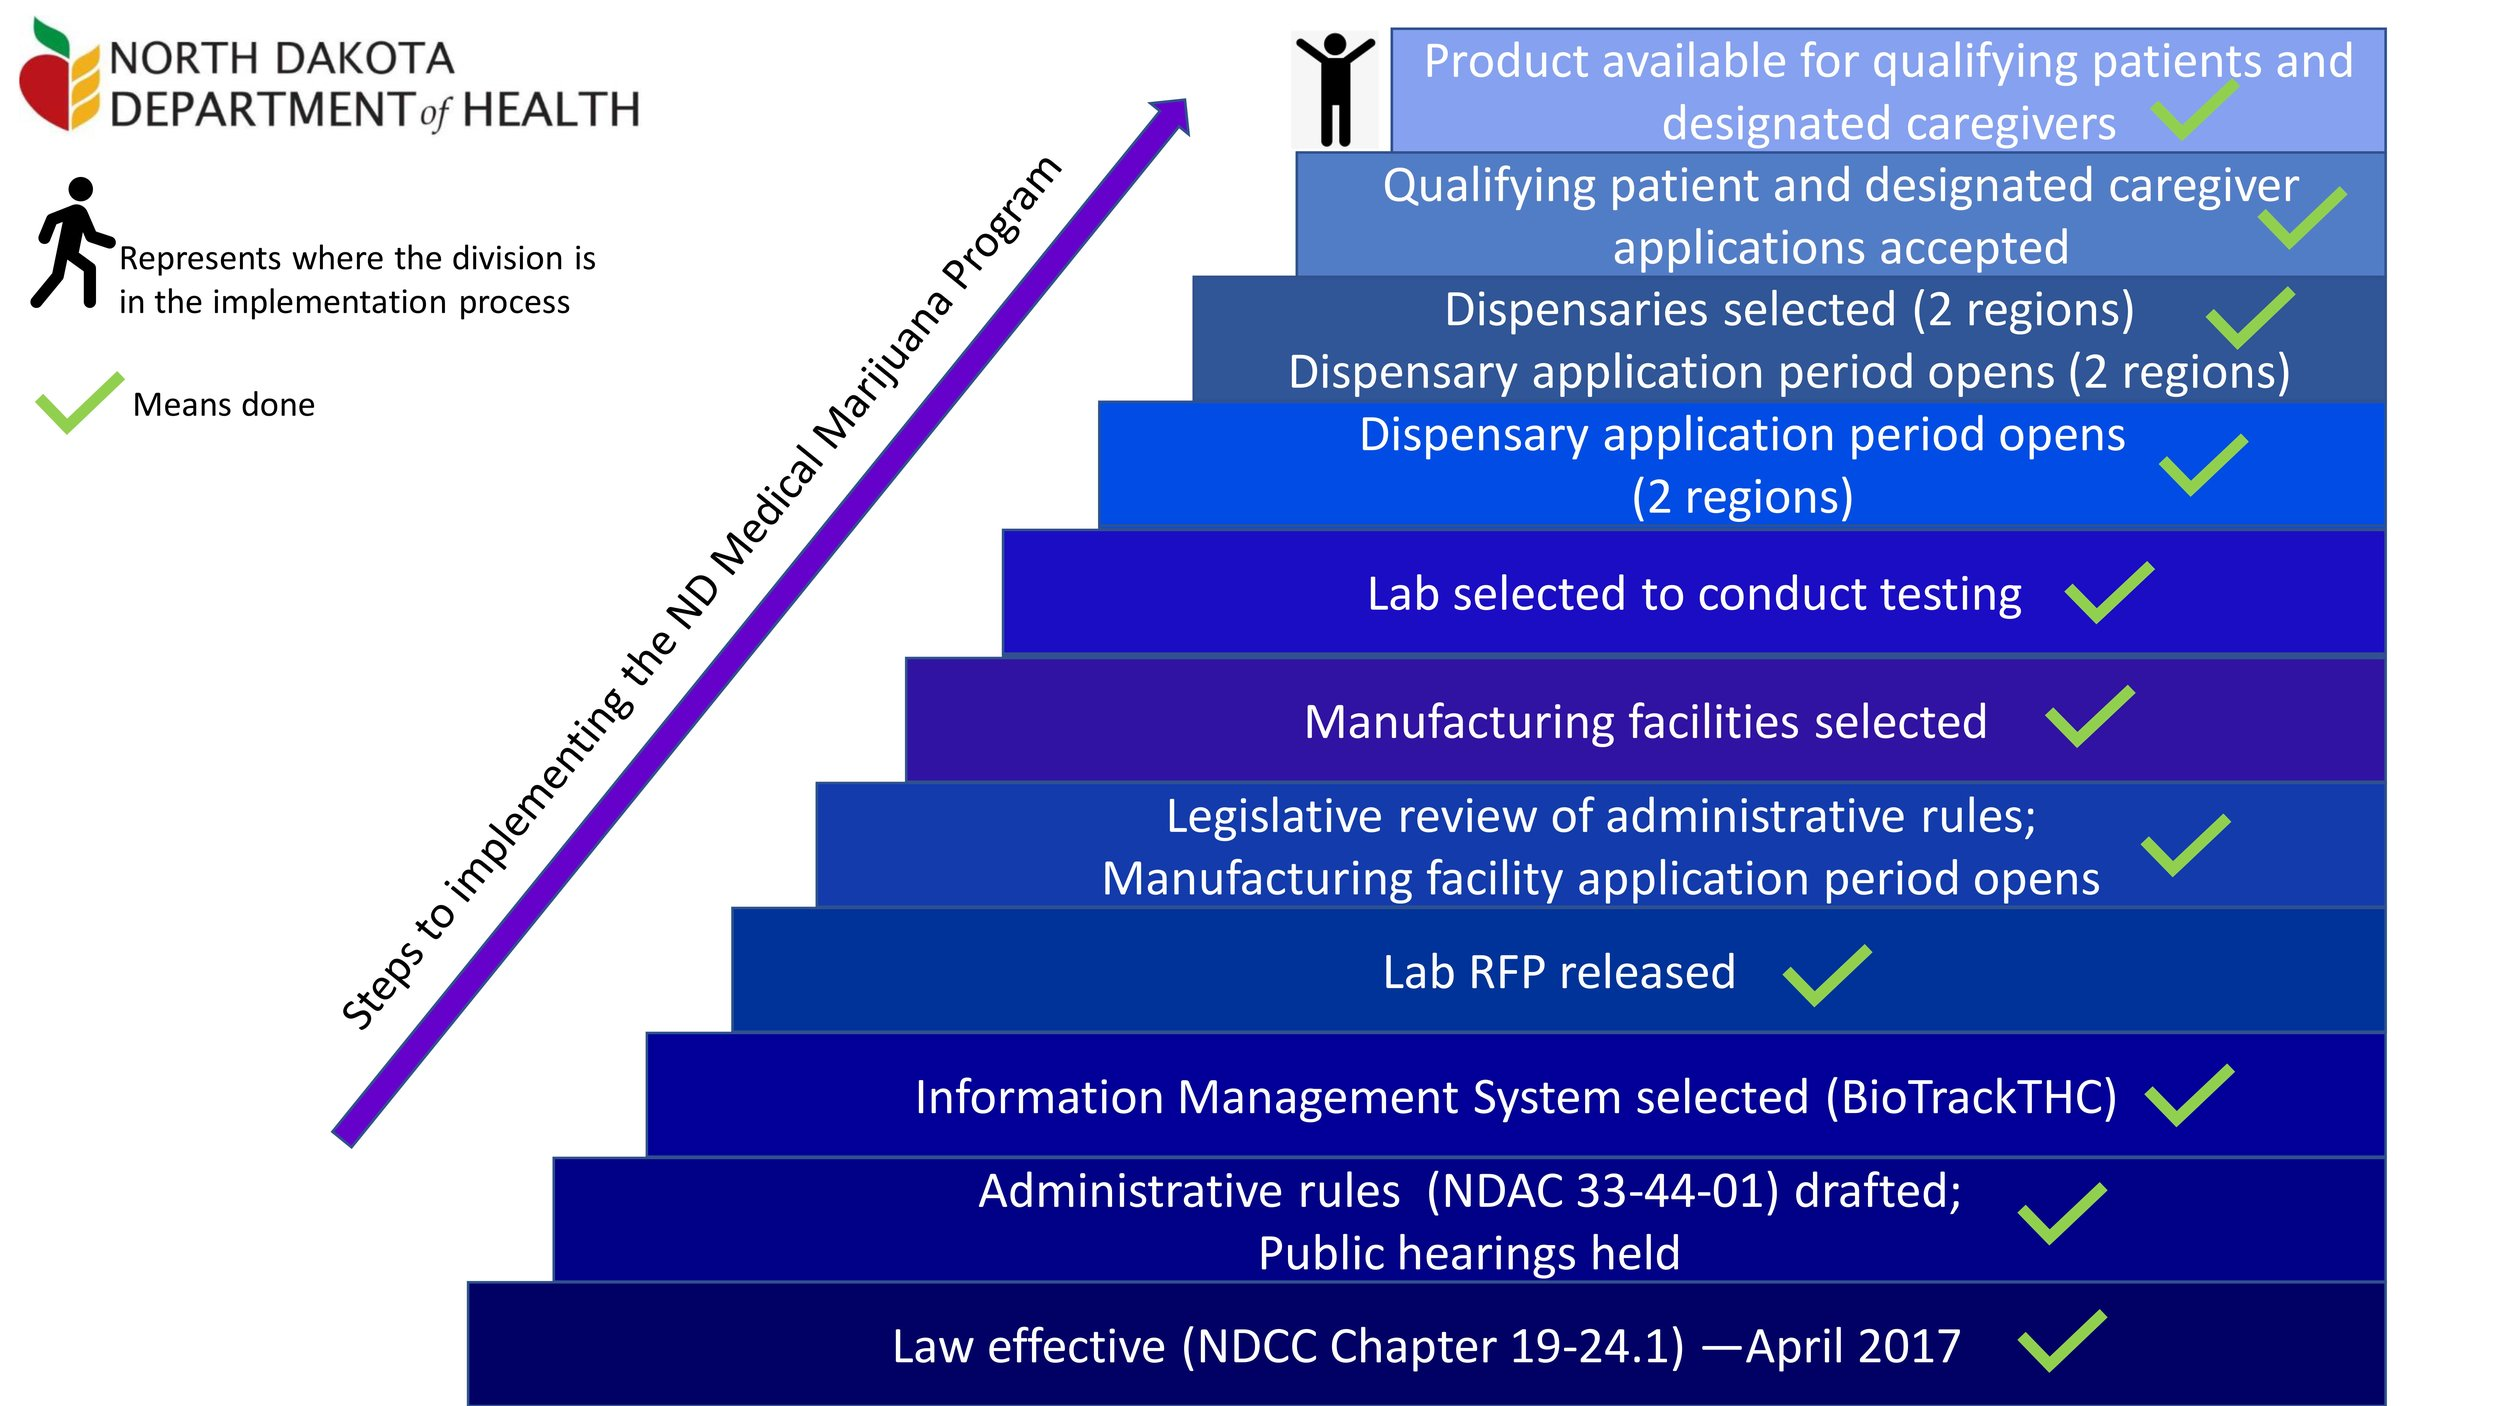 Implementation process by the North Dakota Department of Health